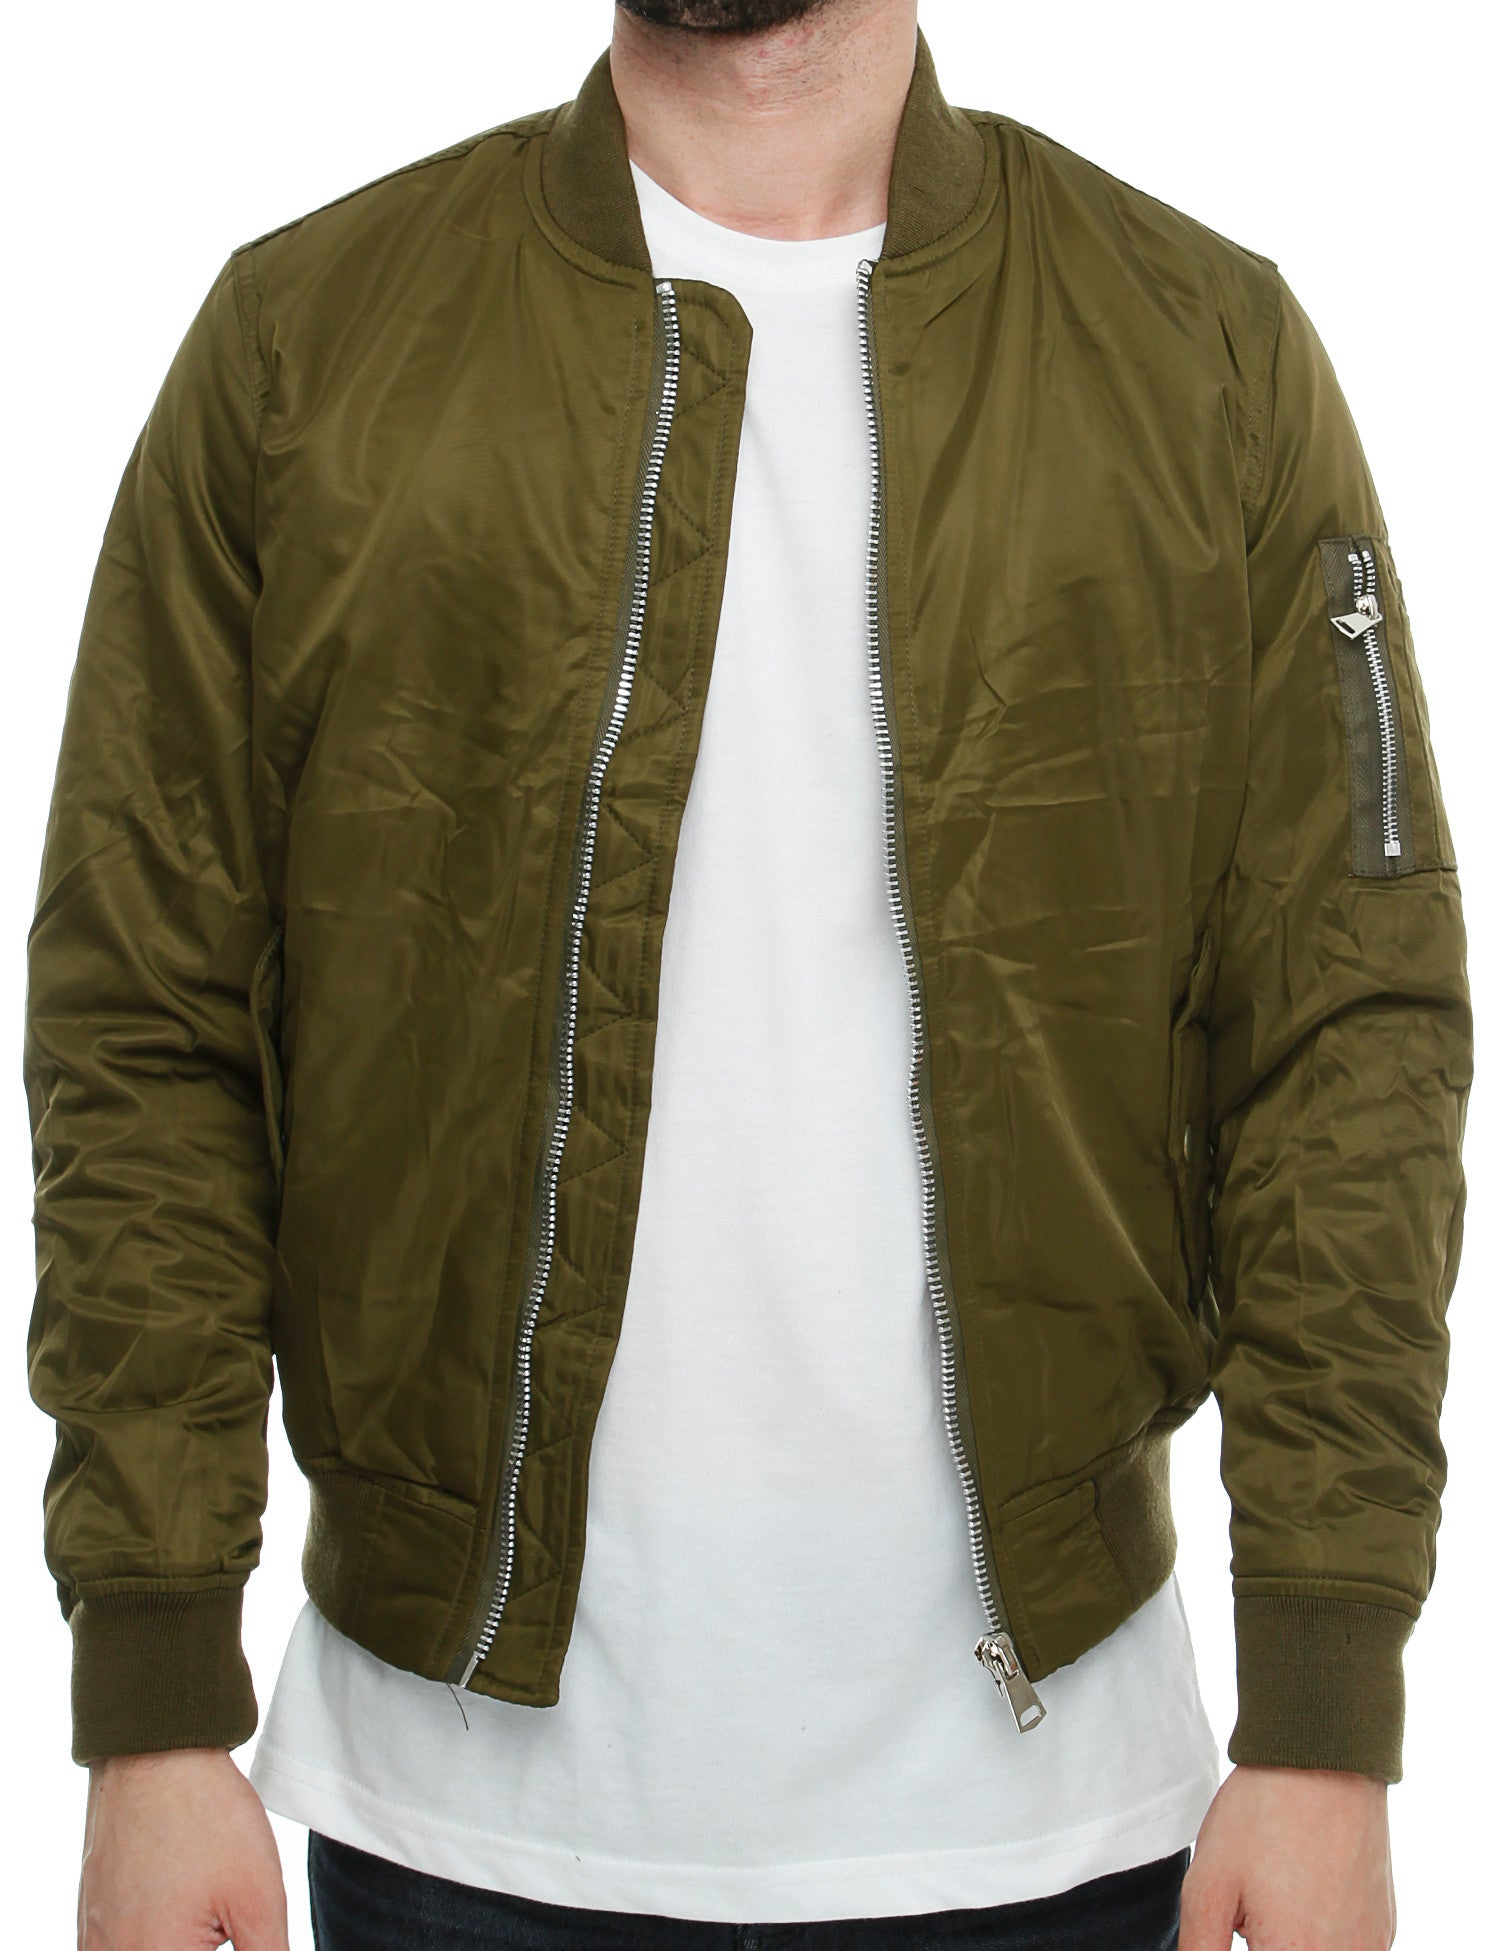 Bomber Jacket K-007 Olive Green